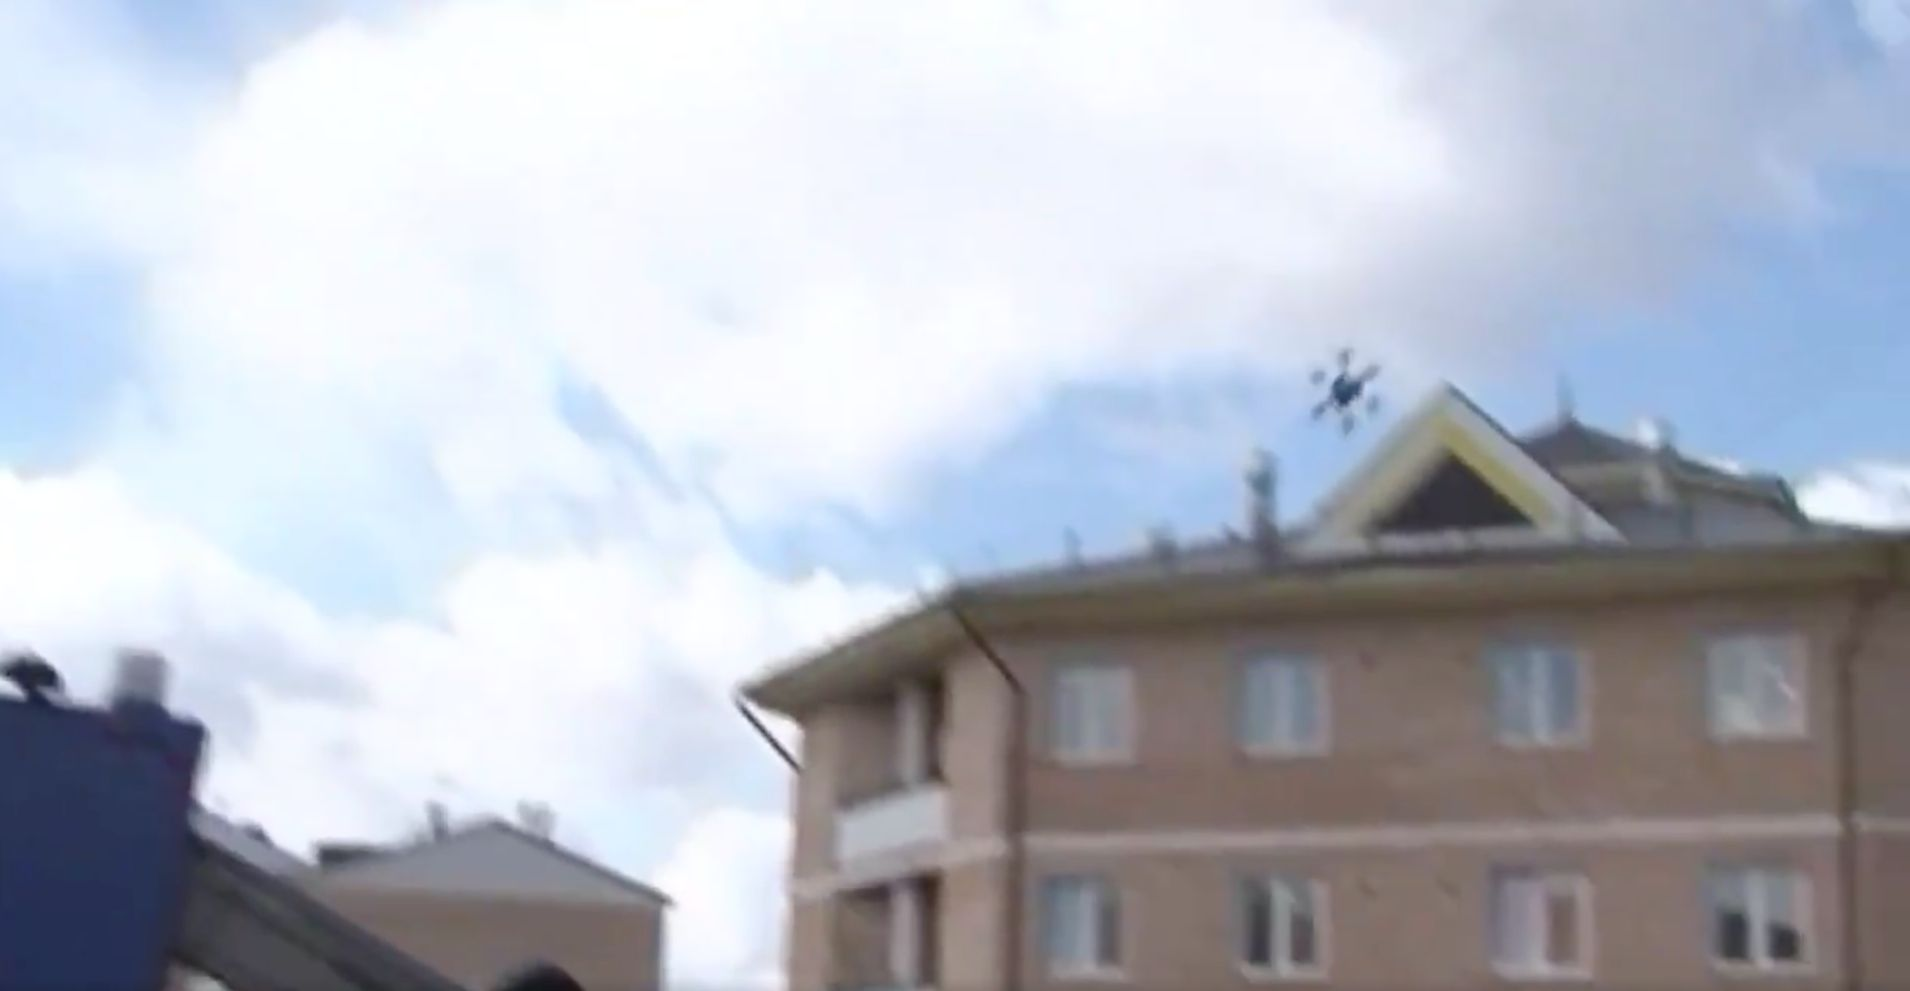 Watch Russia's Postal Drone Fly Spectacularly Into A Wall On Its First